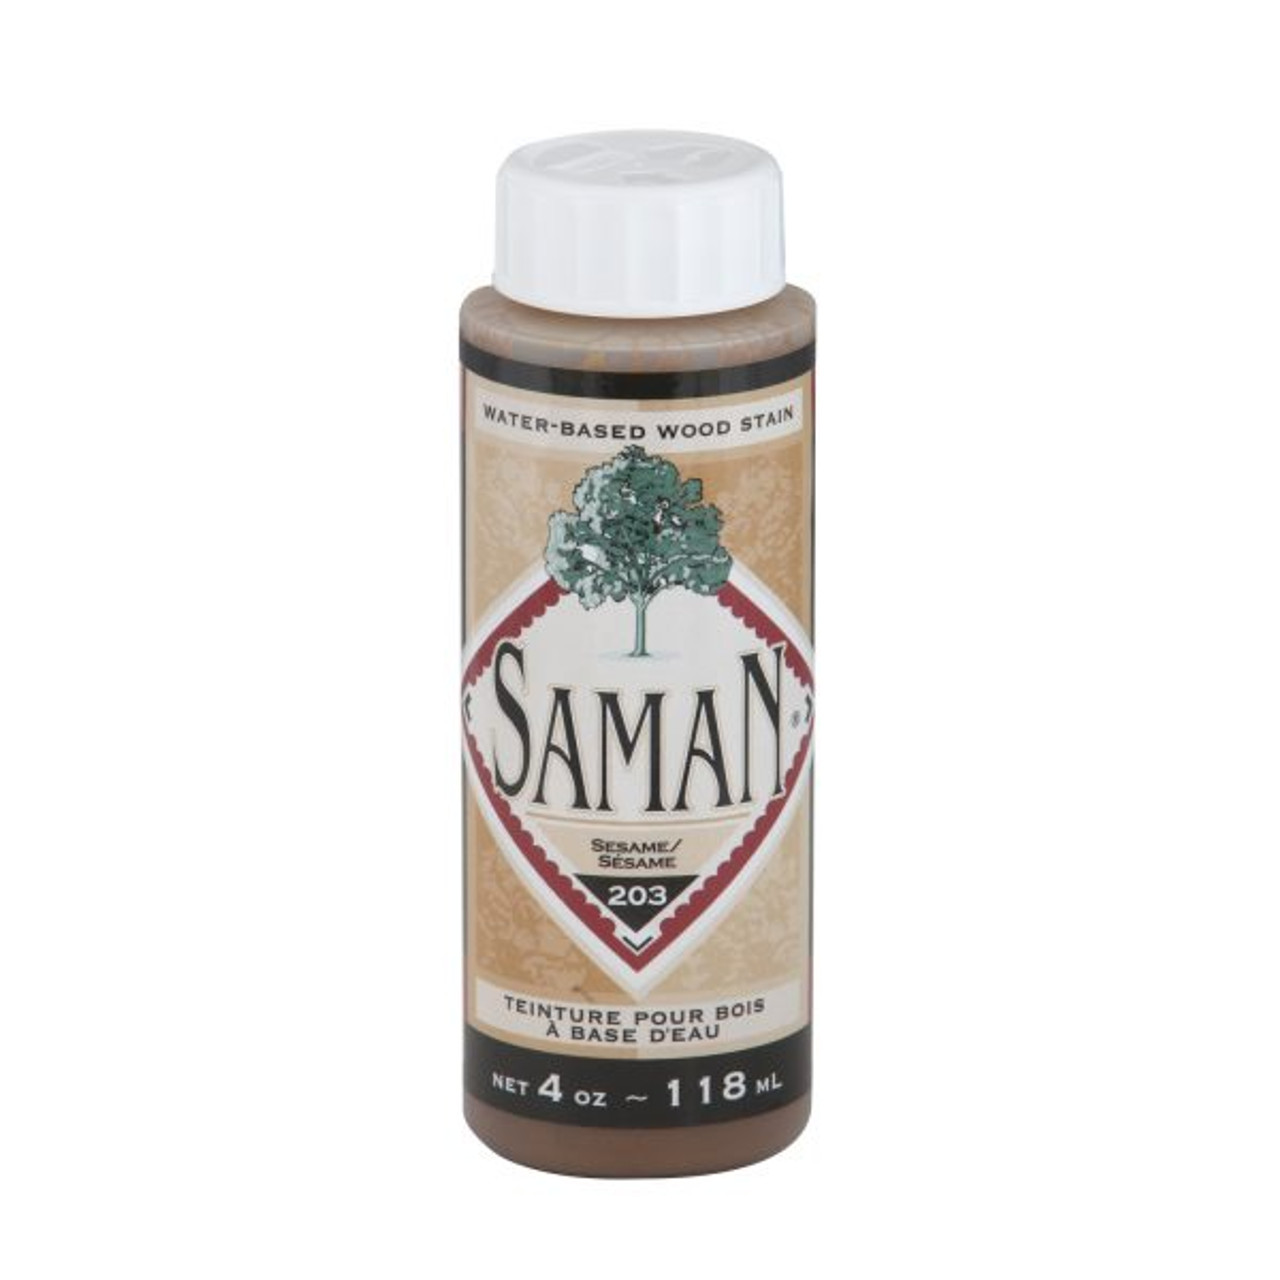 A bottle of the Saman sesame colored stain.